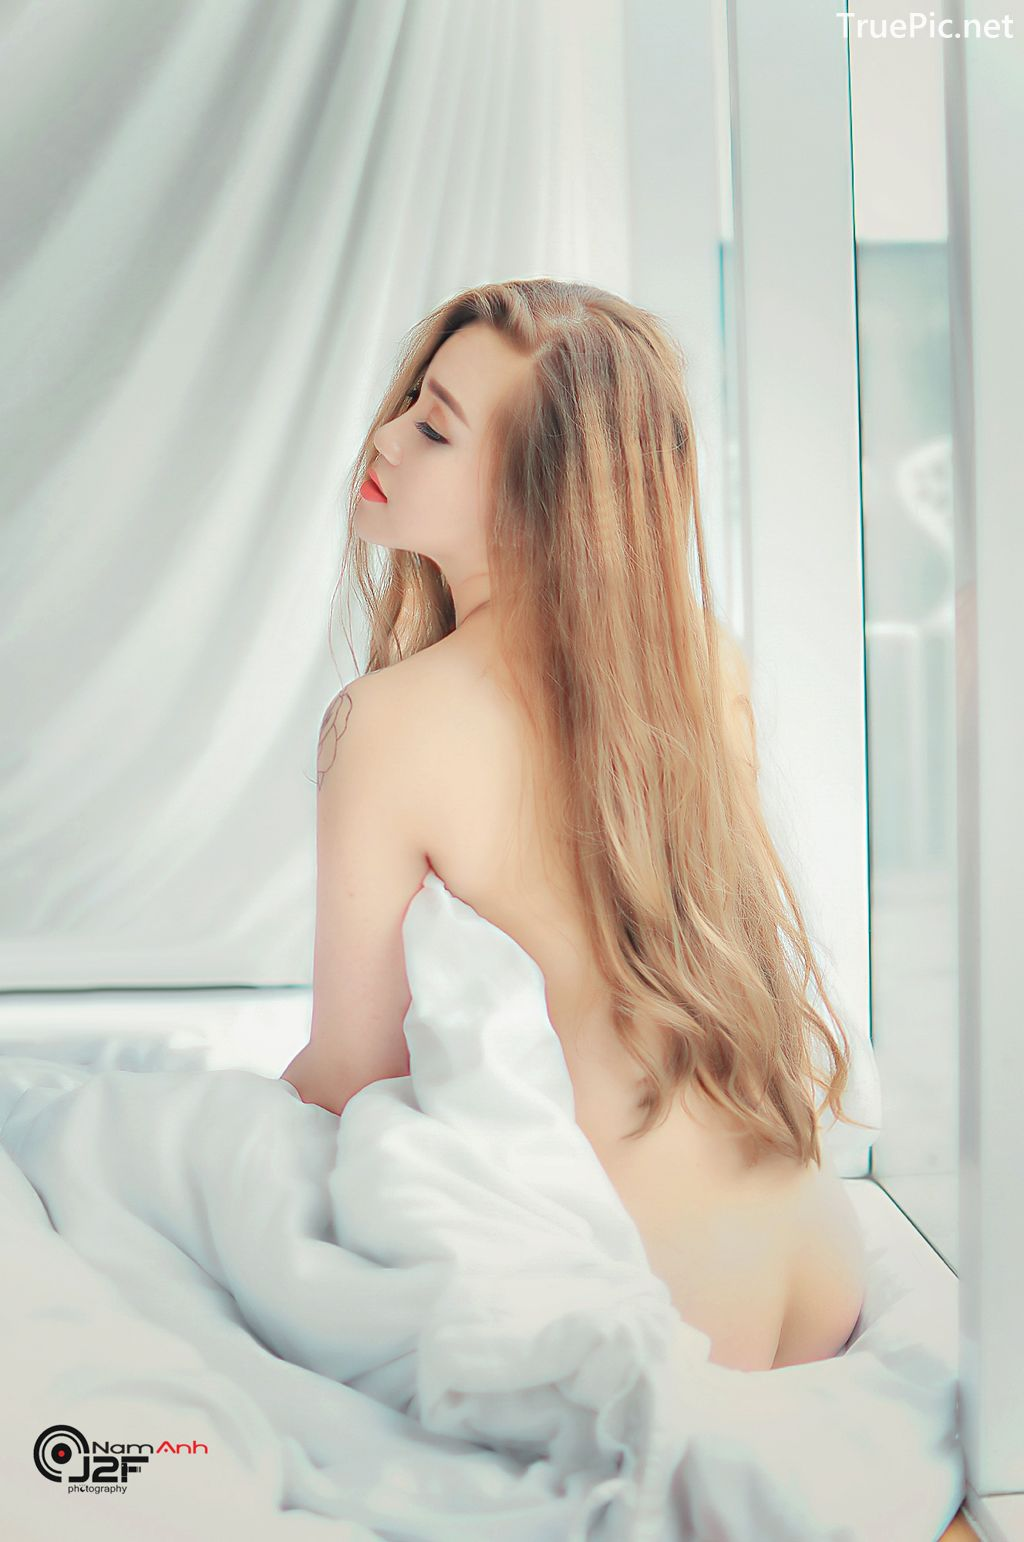 Image-Vietnamese-Model-Sexy-Beauty-of-Beautiful-Girls-Taken-by-NamAnh-Photography-1-TruePic.net- Picture-1